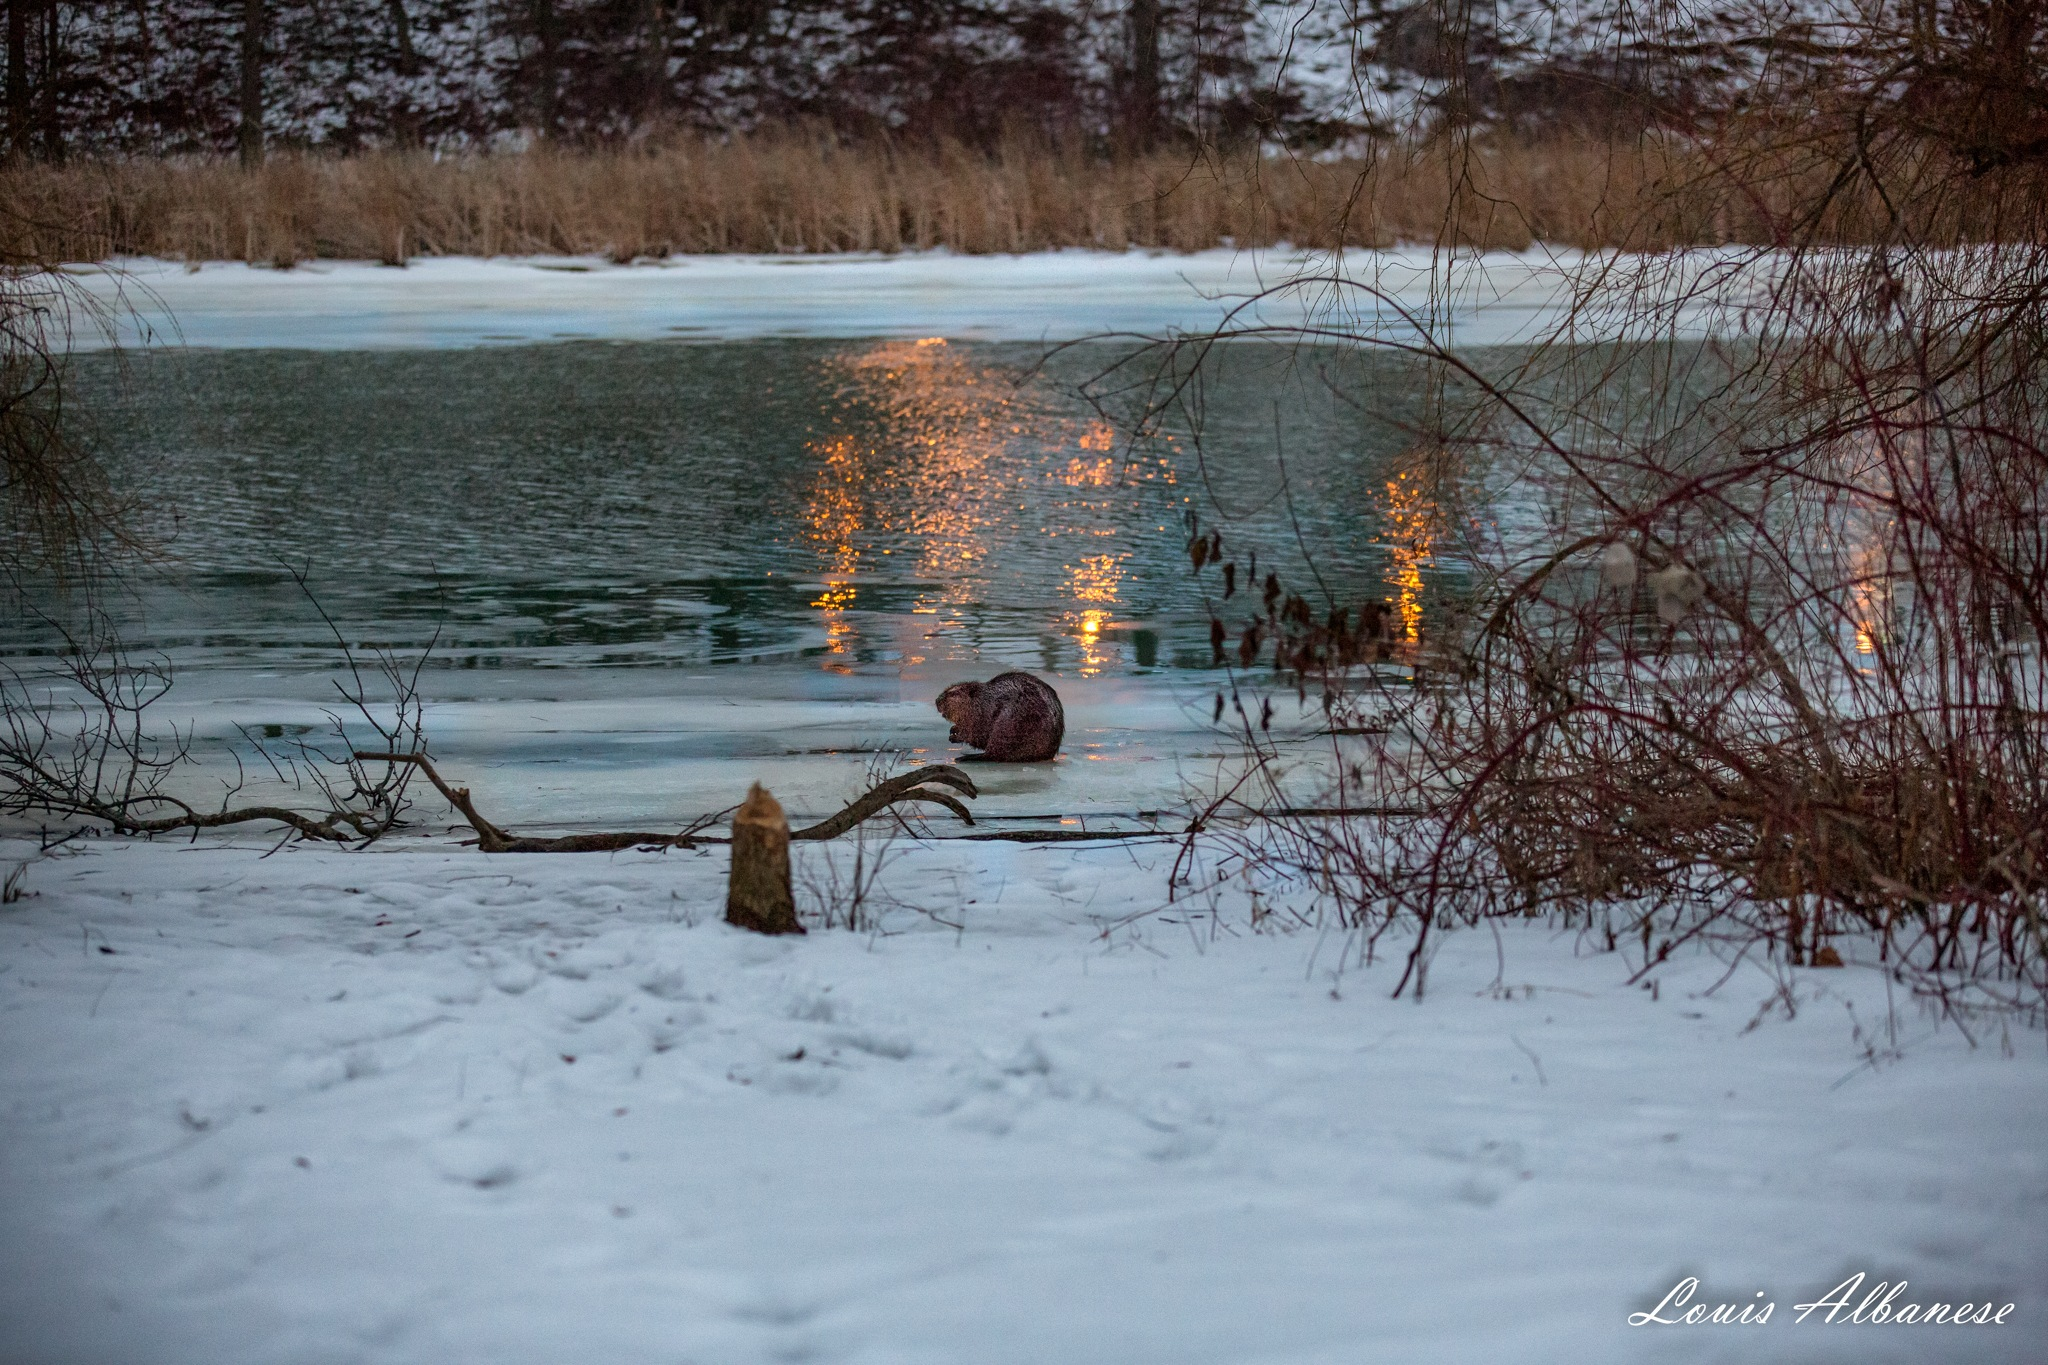 Beaver at Dusk by Louis Albanese